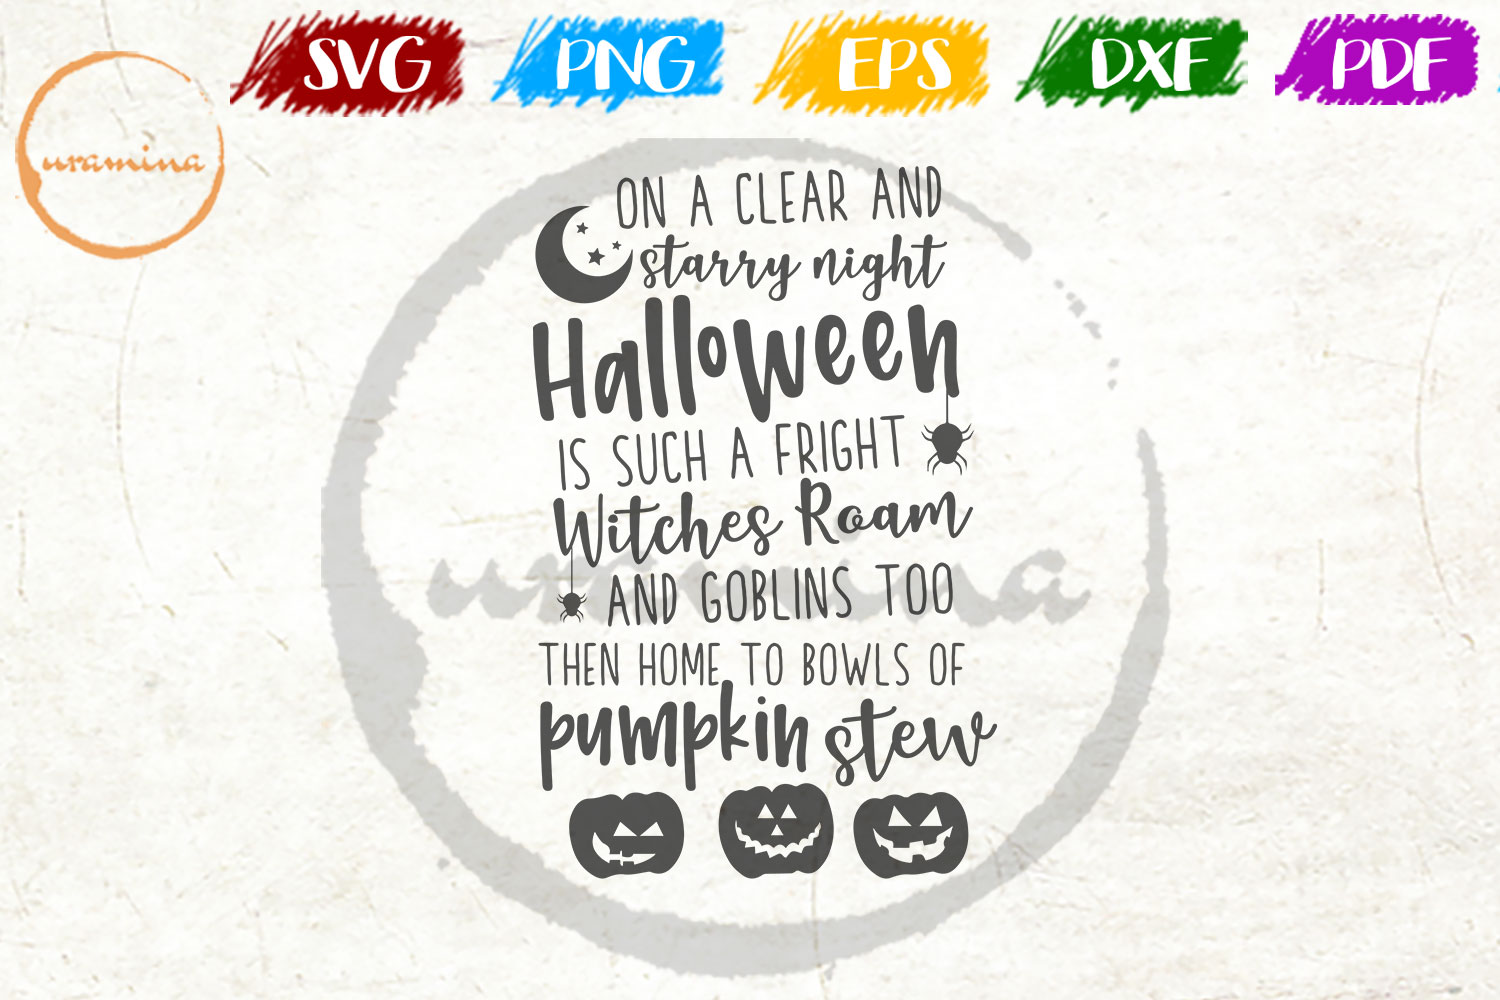 Download Free On A Clear And Starry Night Halloween Graphic By Uramina Creative Fabrica for Cricut Explore, Silhouette and other cutting machines.